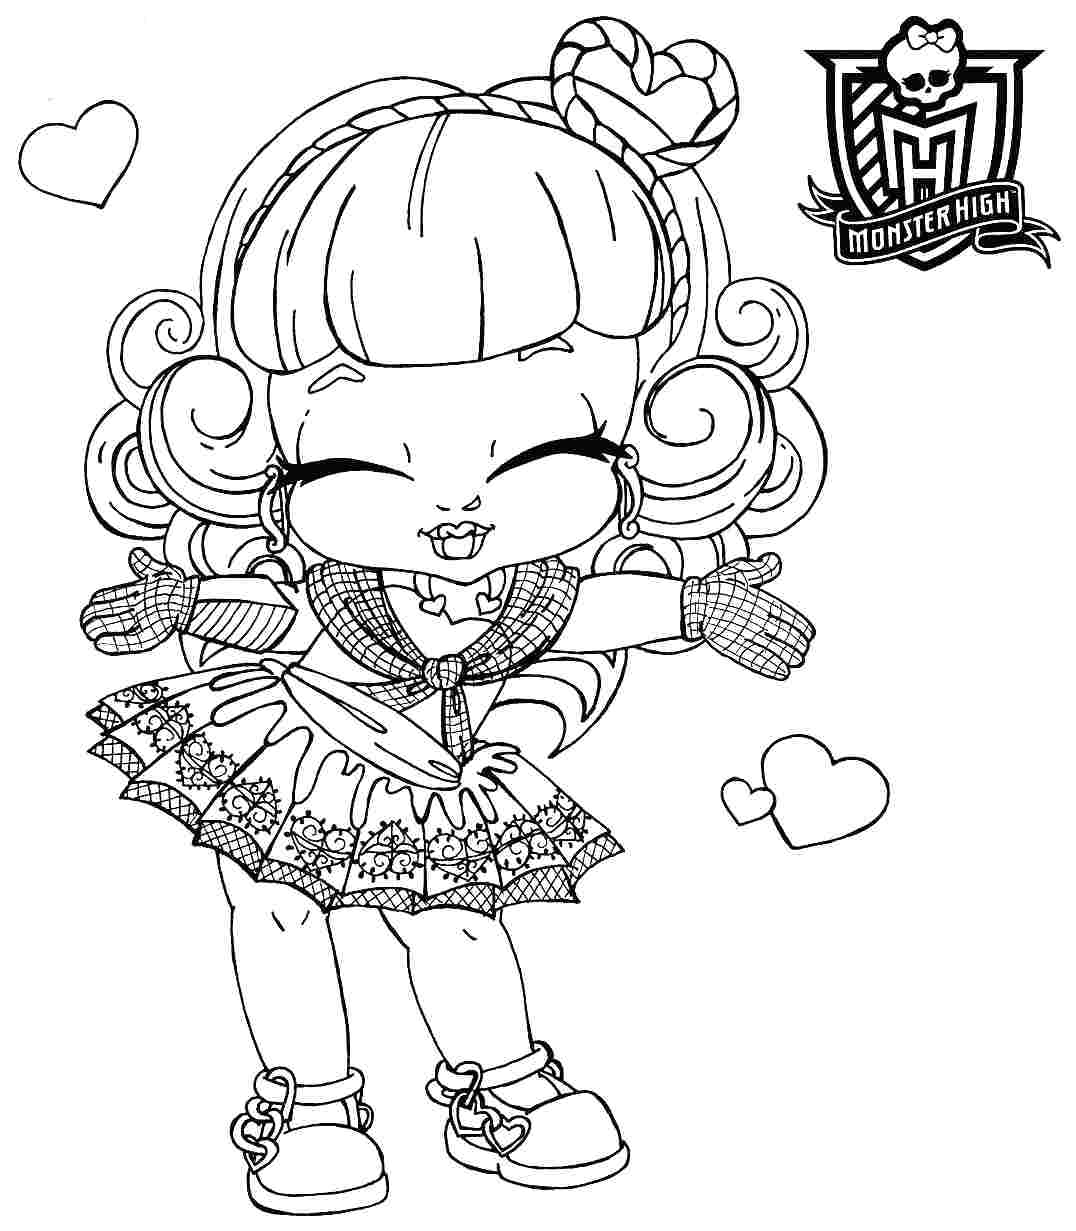 Monster High Baby Coloring Pages 012 to Coloring Pages Collection Of Exquisite Monster High Printables Coloring Pages Free Gallery